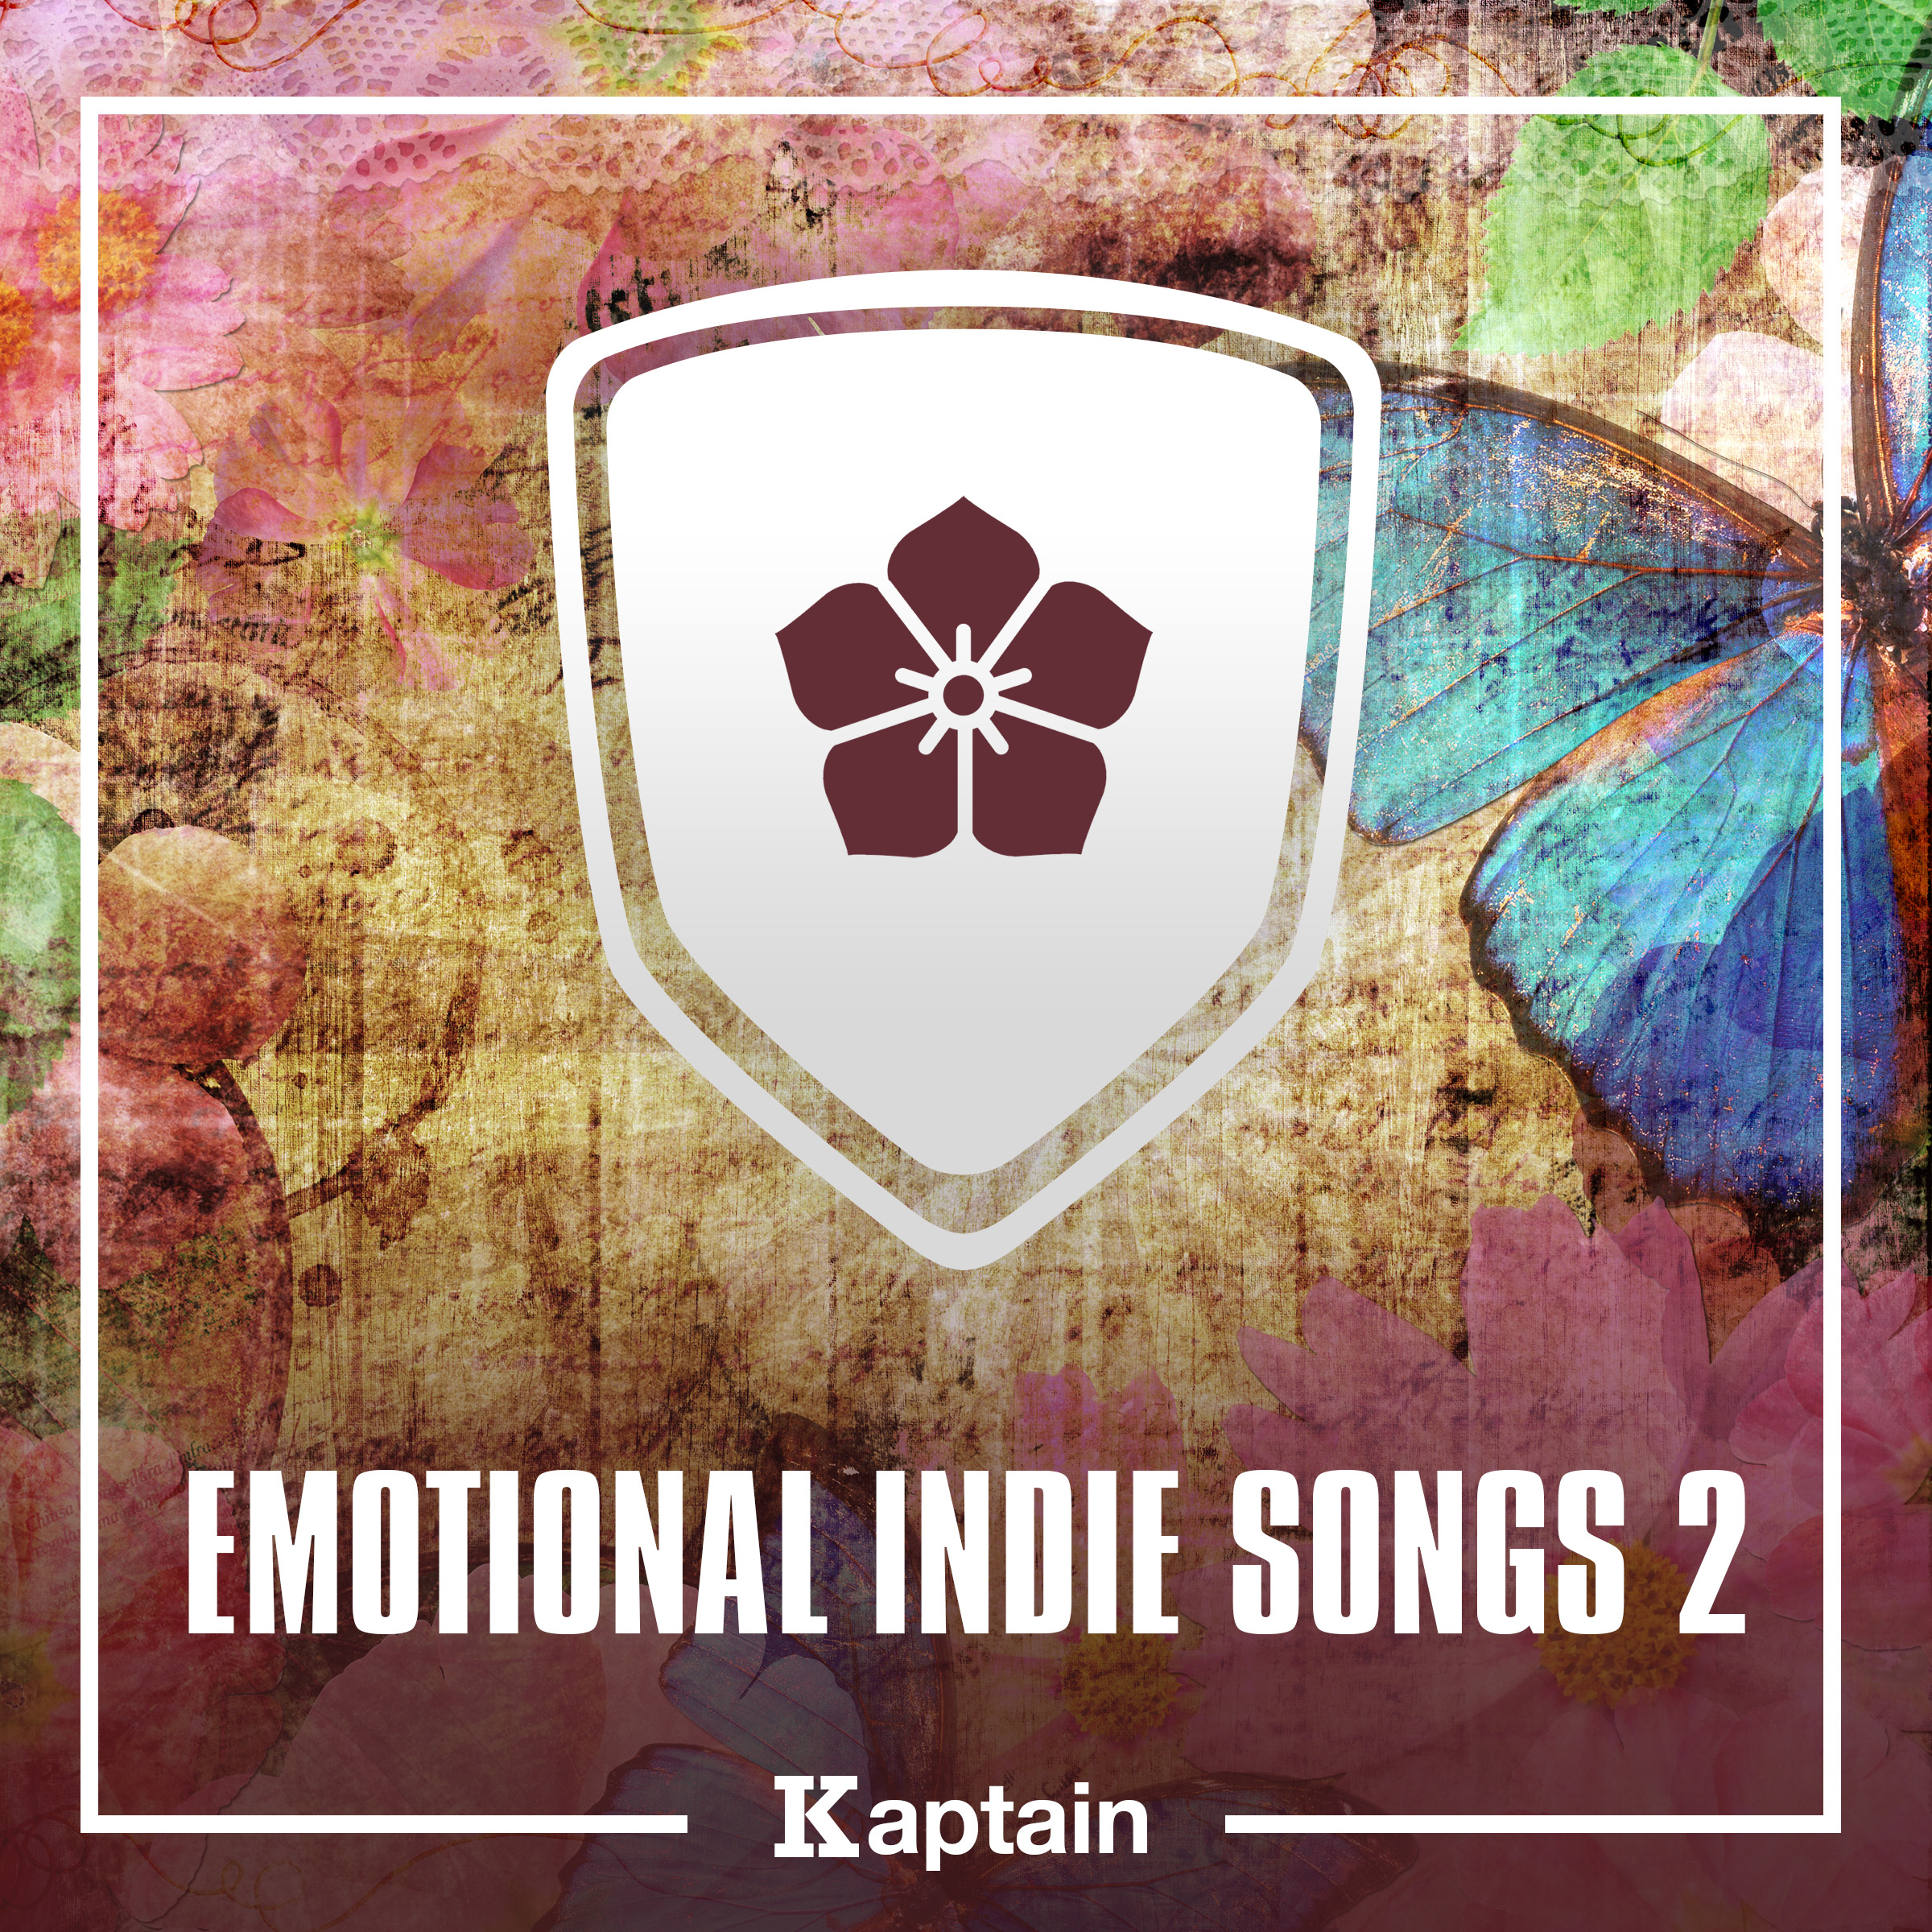 Emotional Indie Songs 2